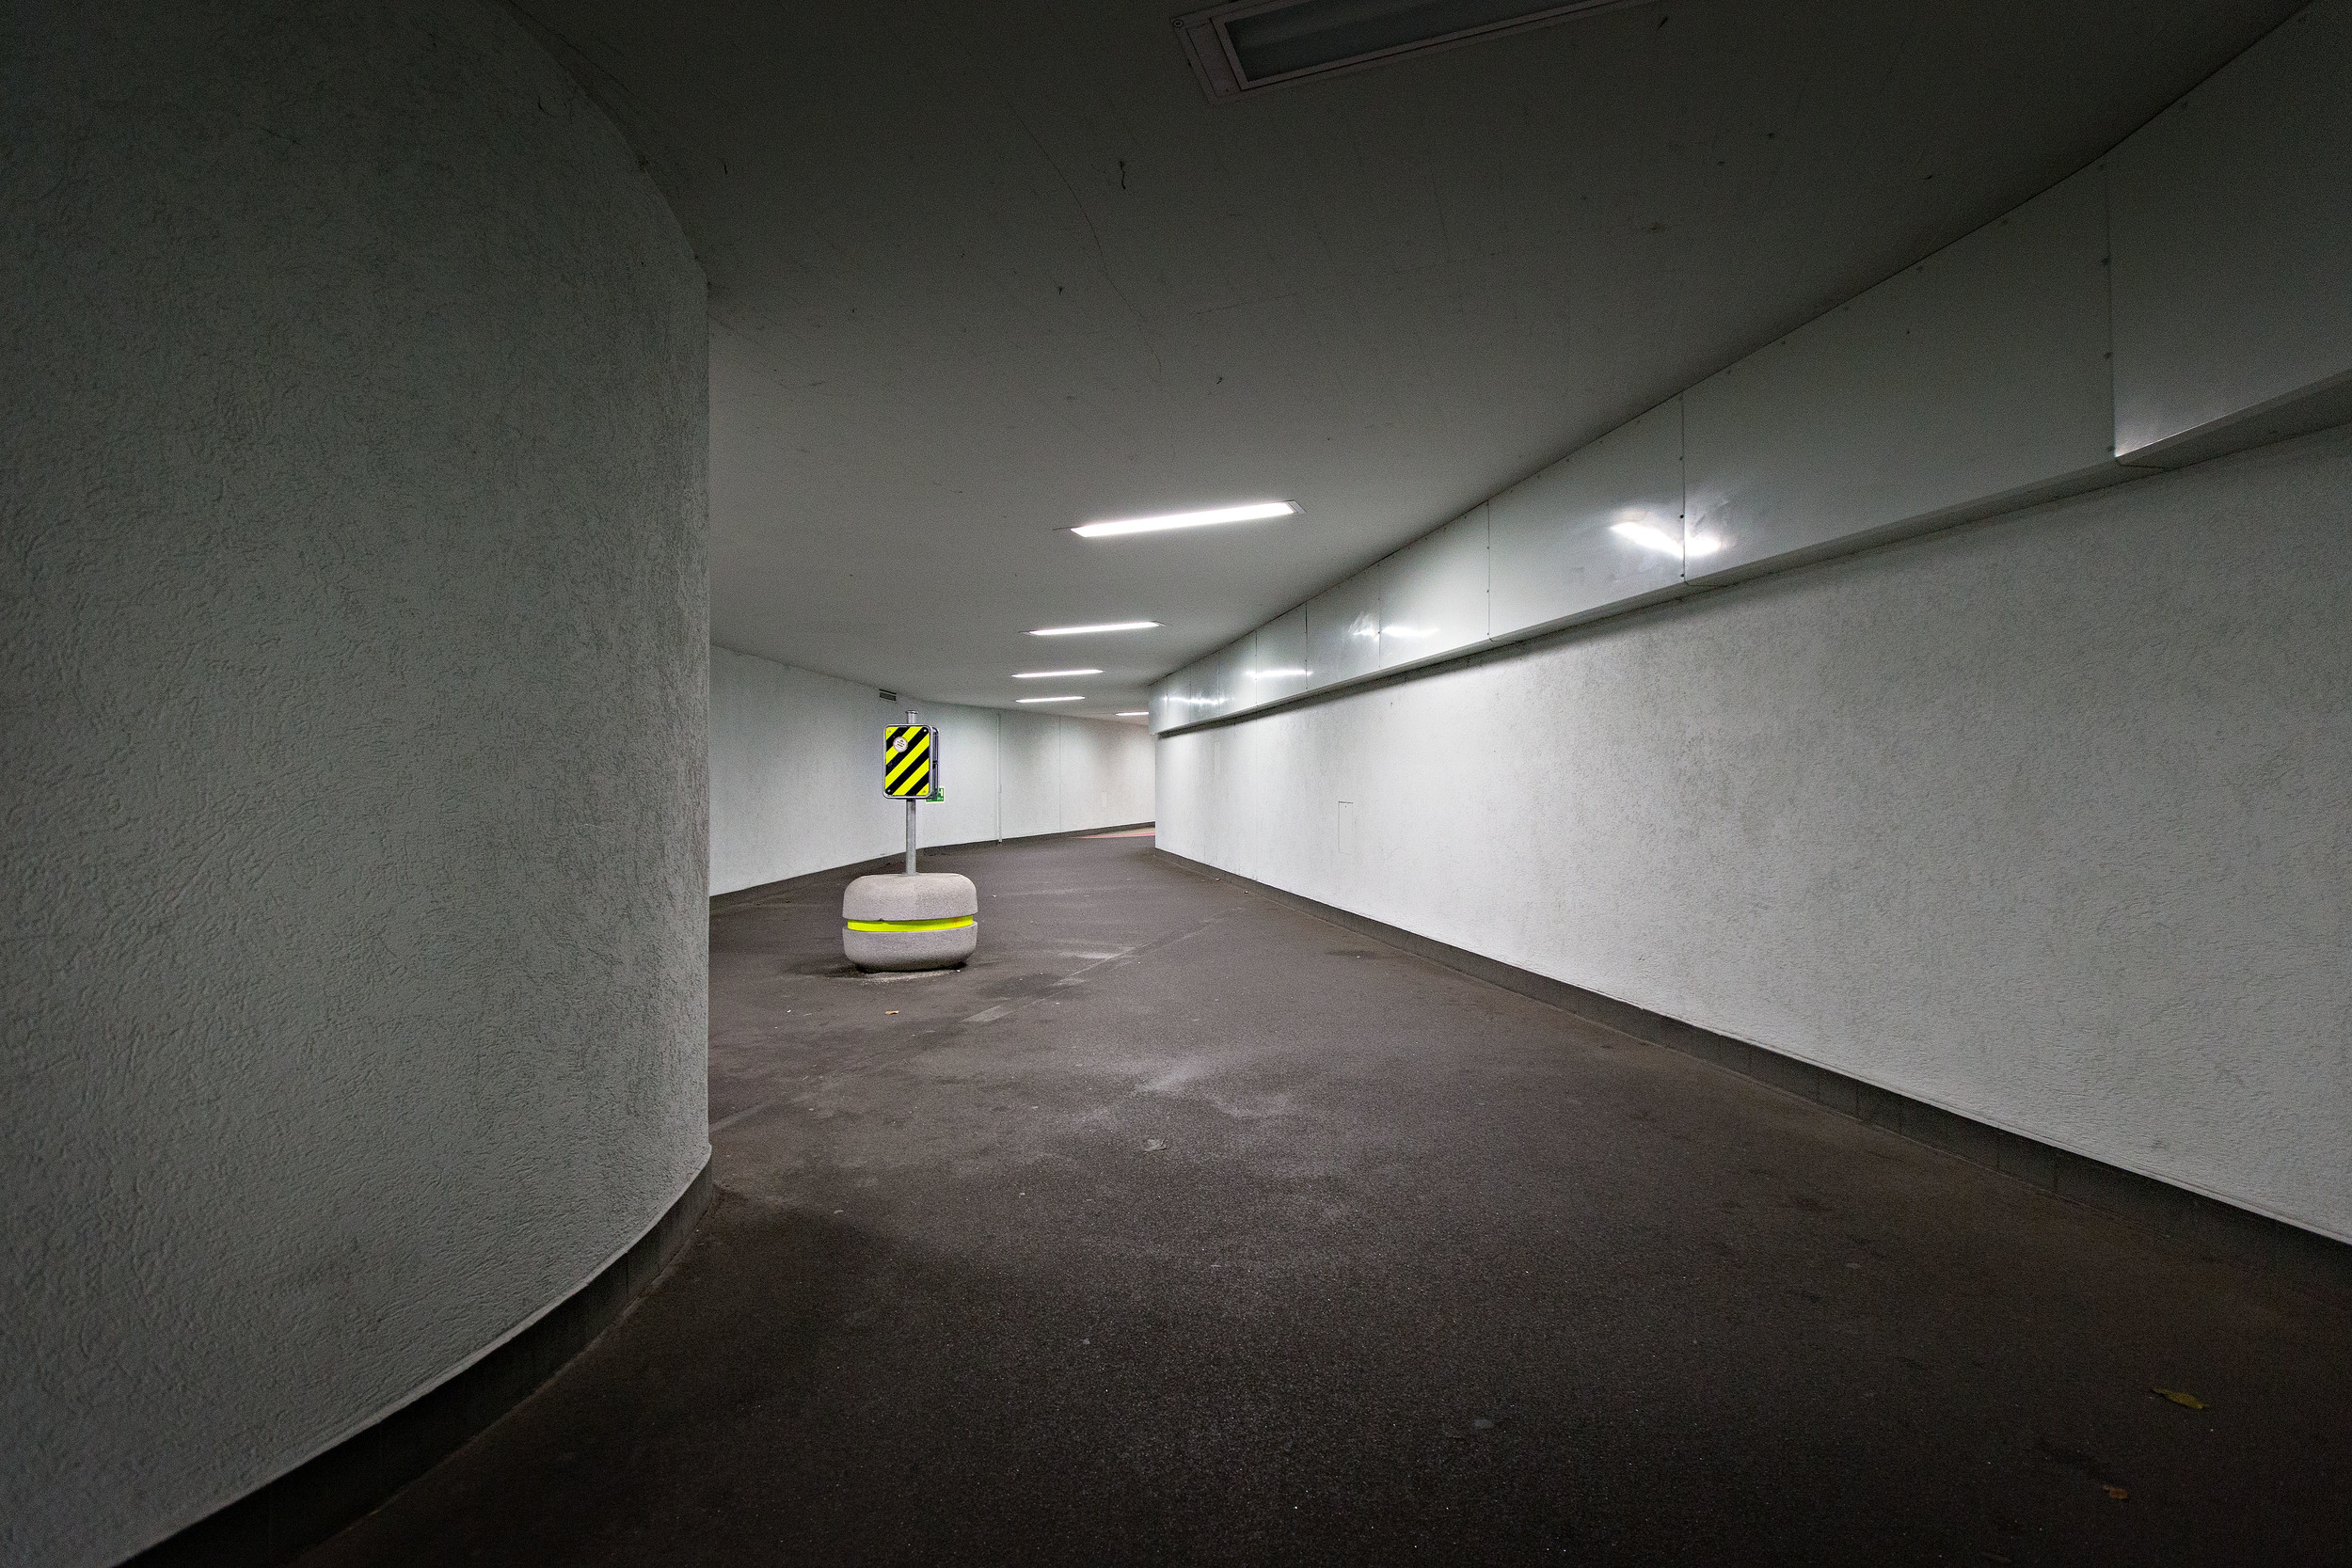 Ulmbergtunnel